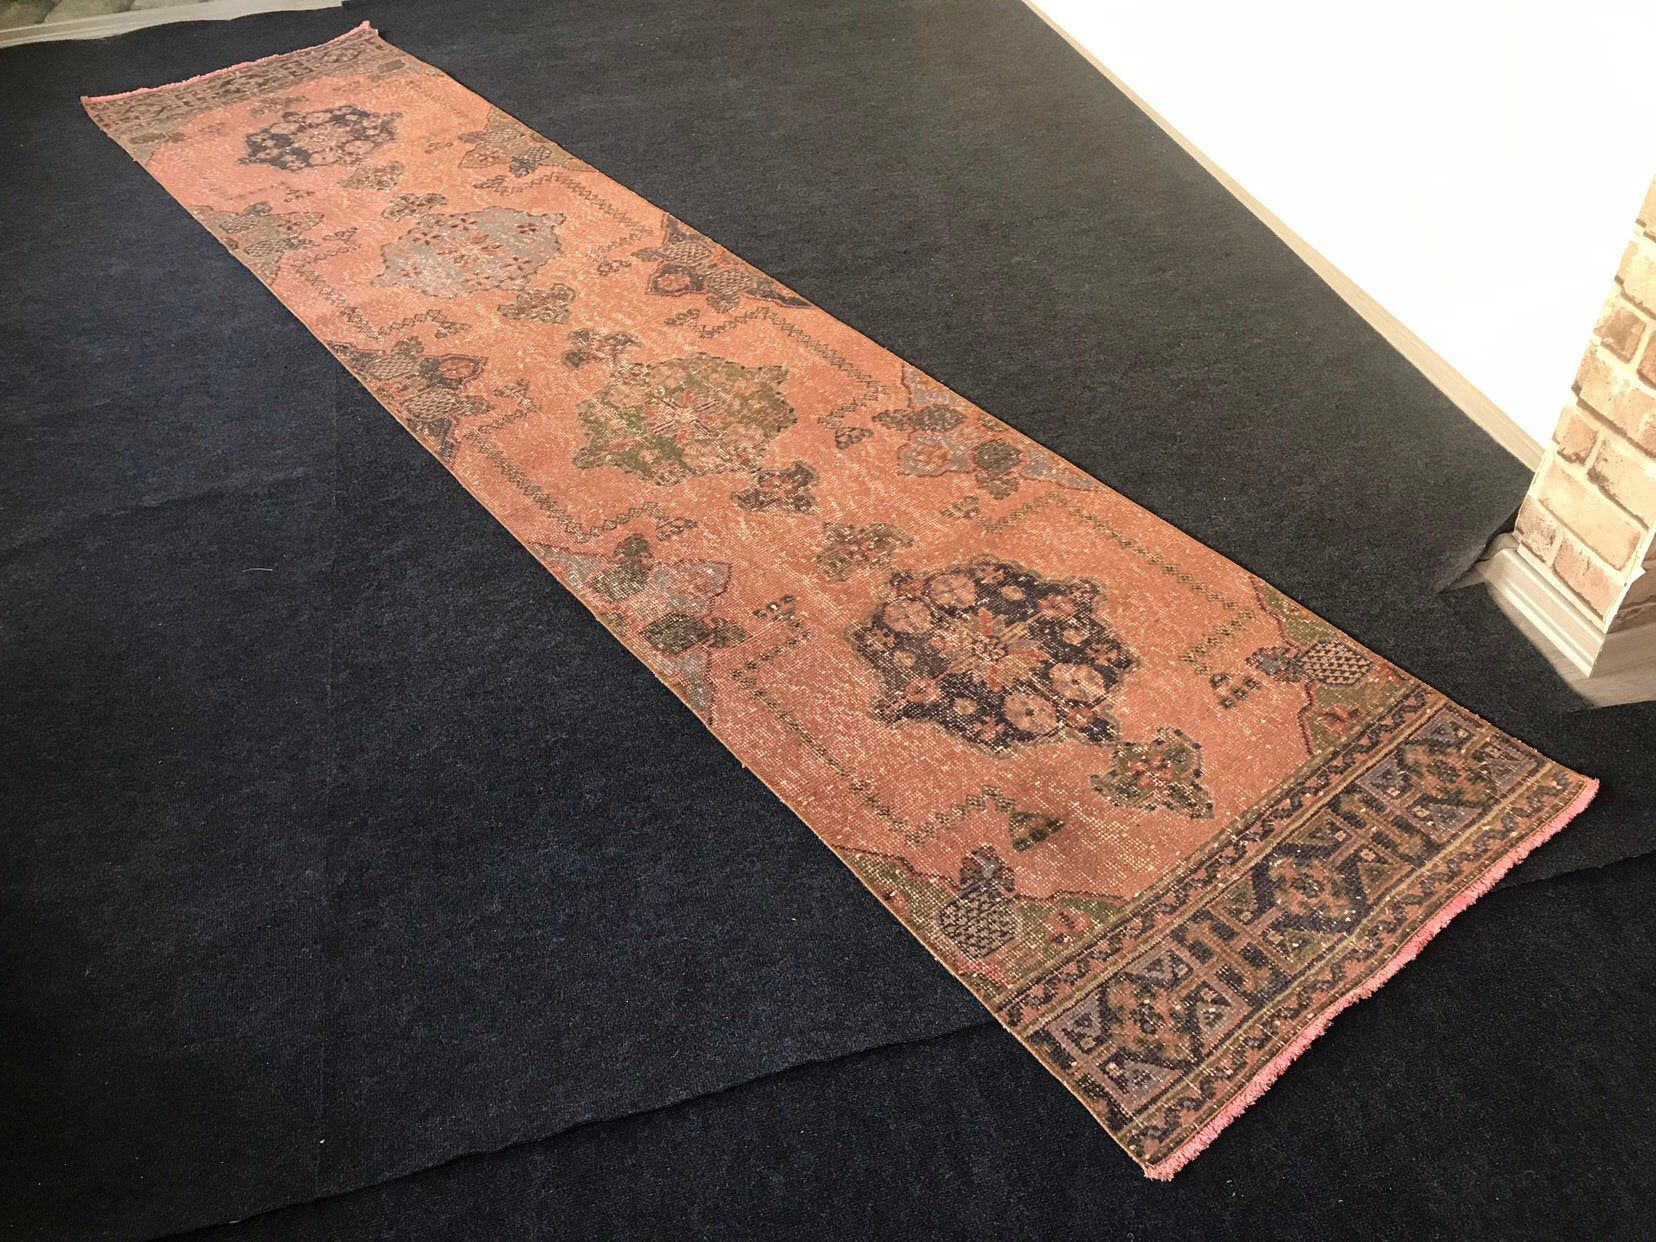 2 9x12 10ft Vintage Oushak Faded Color Runner Rug Free Shipping Turkish Worn Runner Carpet Low Pile Distressed Hallway Rug Kitchen Rug 2020 Ic Tasarim Tasarim Dekorasyon